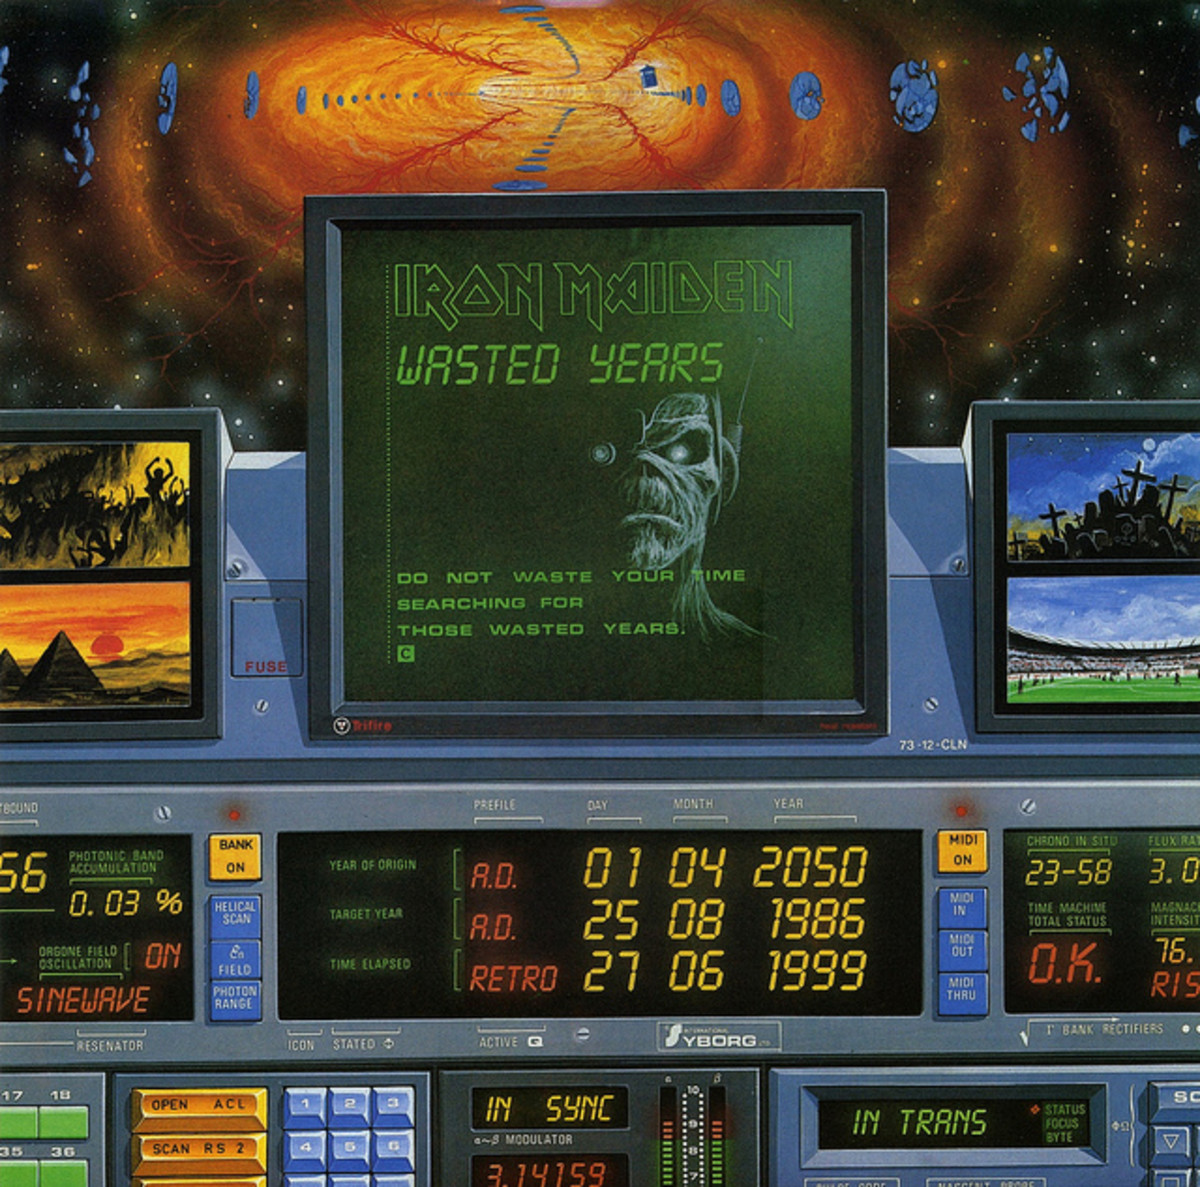 """Iron Maiden """"Wasted Years"""" EMI 12EMI 5583 12"""" Vinyl Single UK Pressing (1986) Cover Art by Derek Riggs"""